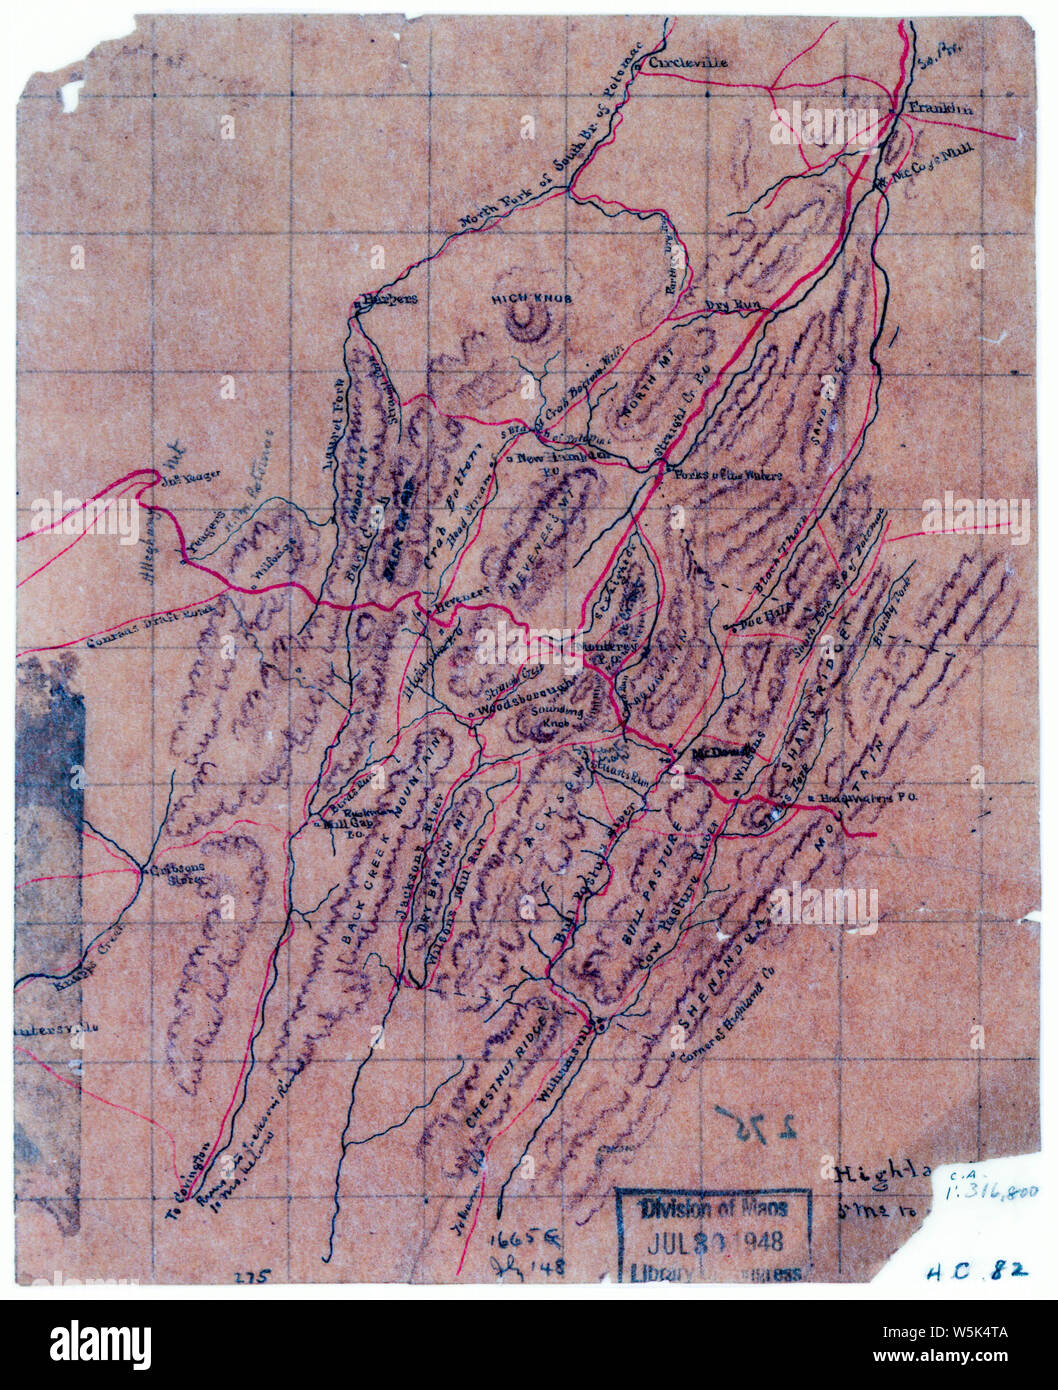 030  Map of parts of Highland County Va and Pendleton County W Va Rebuild and Repair Stock Photo